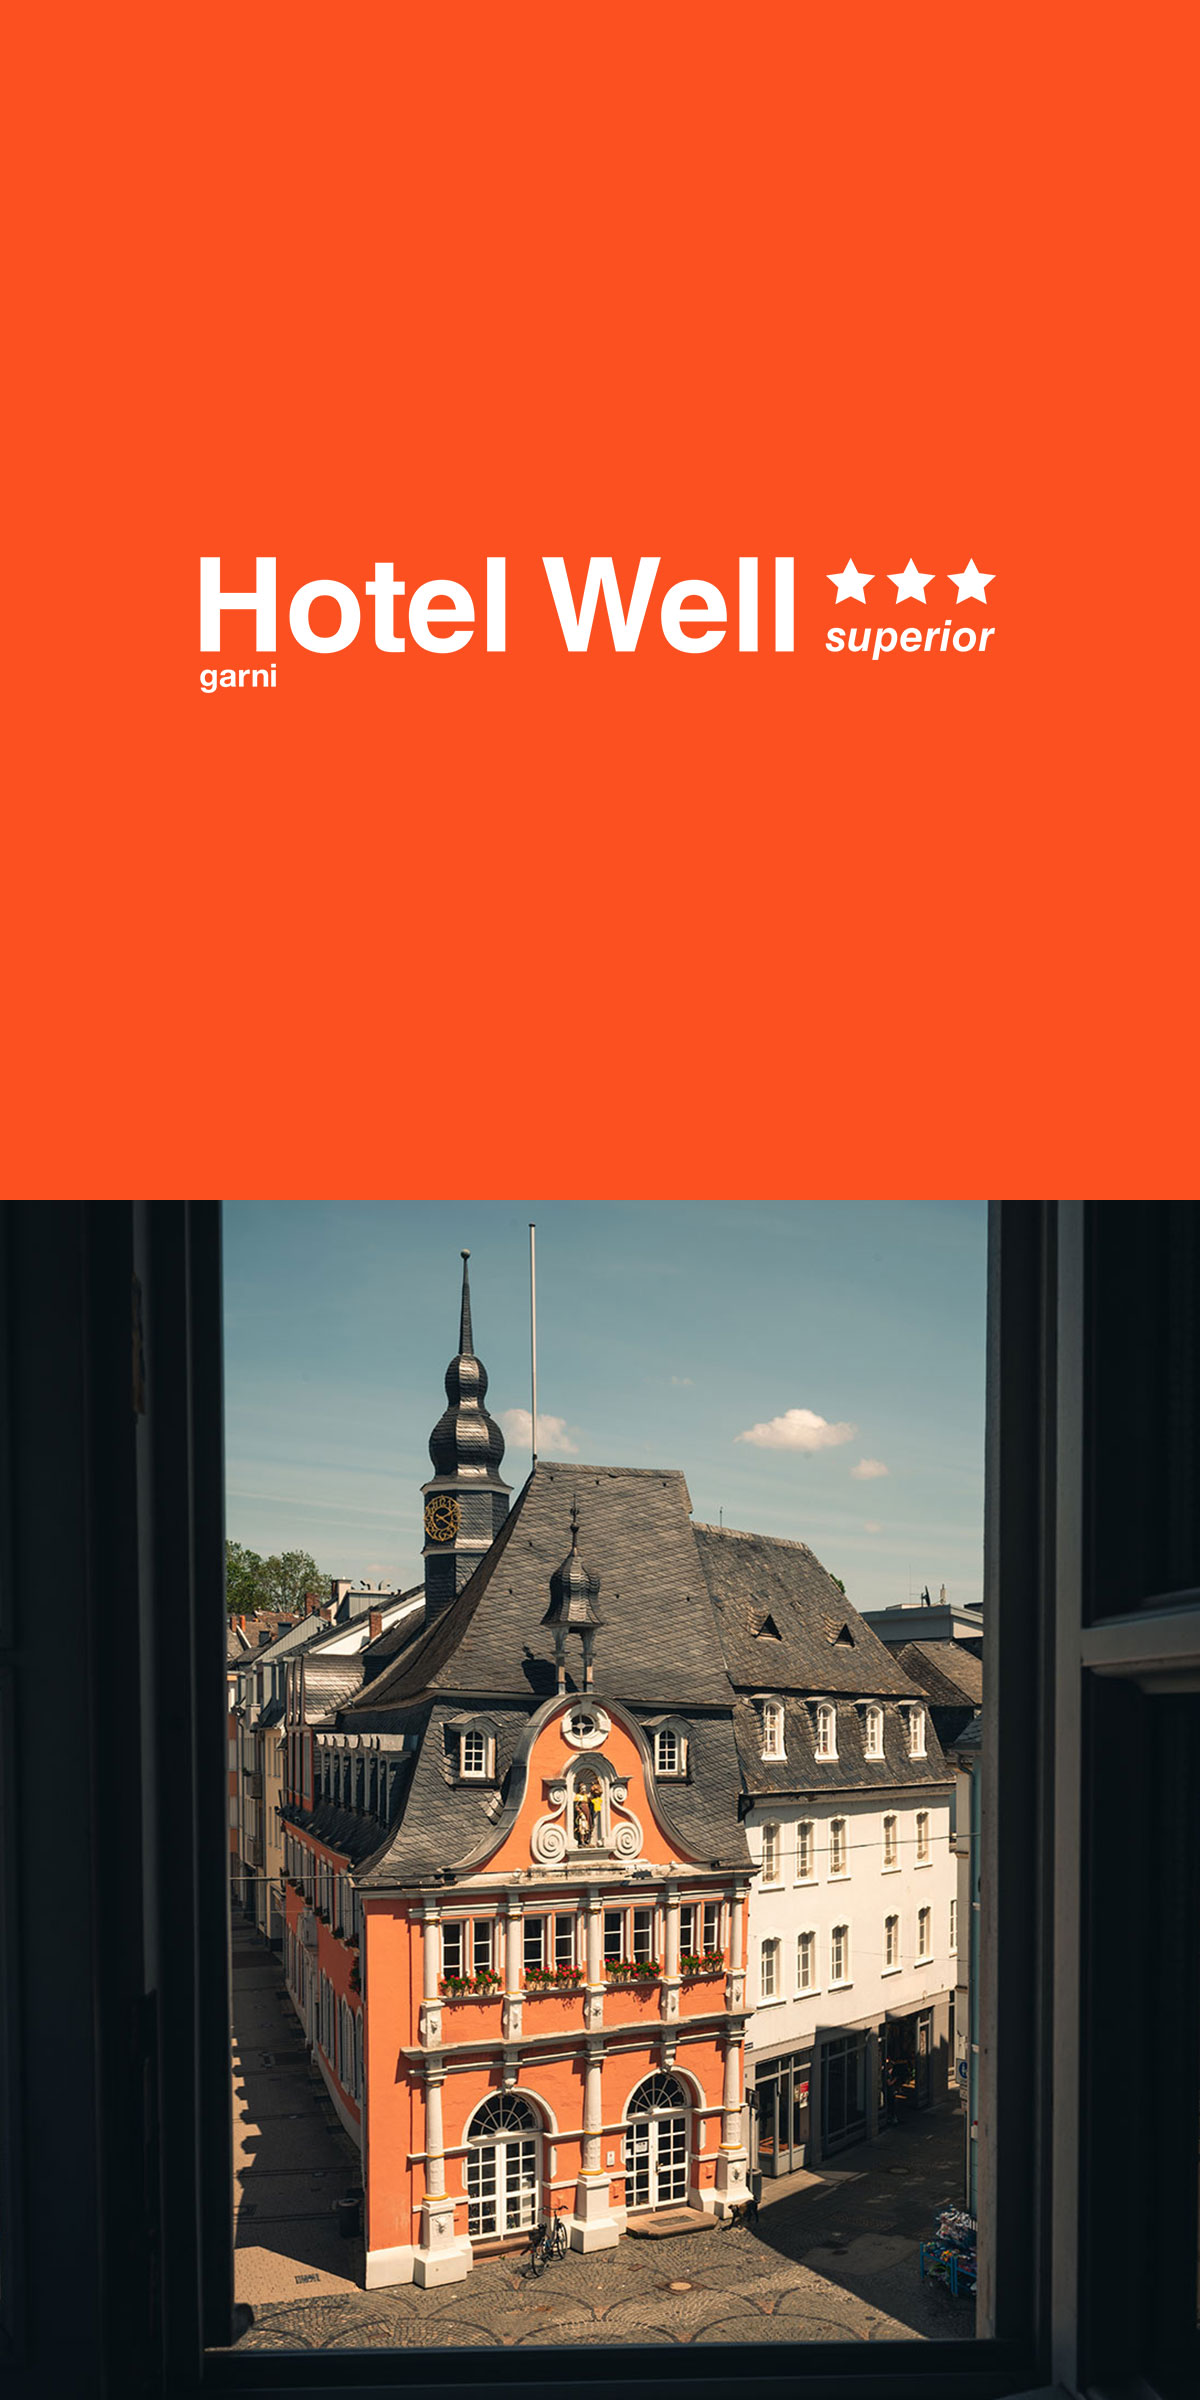 Hotel Well - Hotel in Wittlich